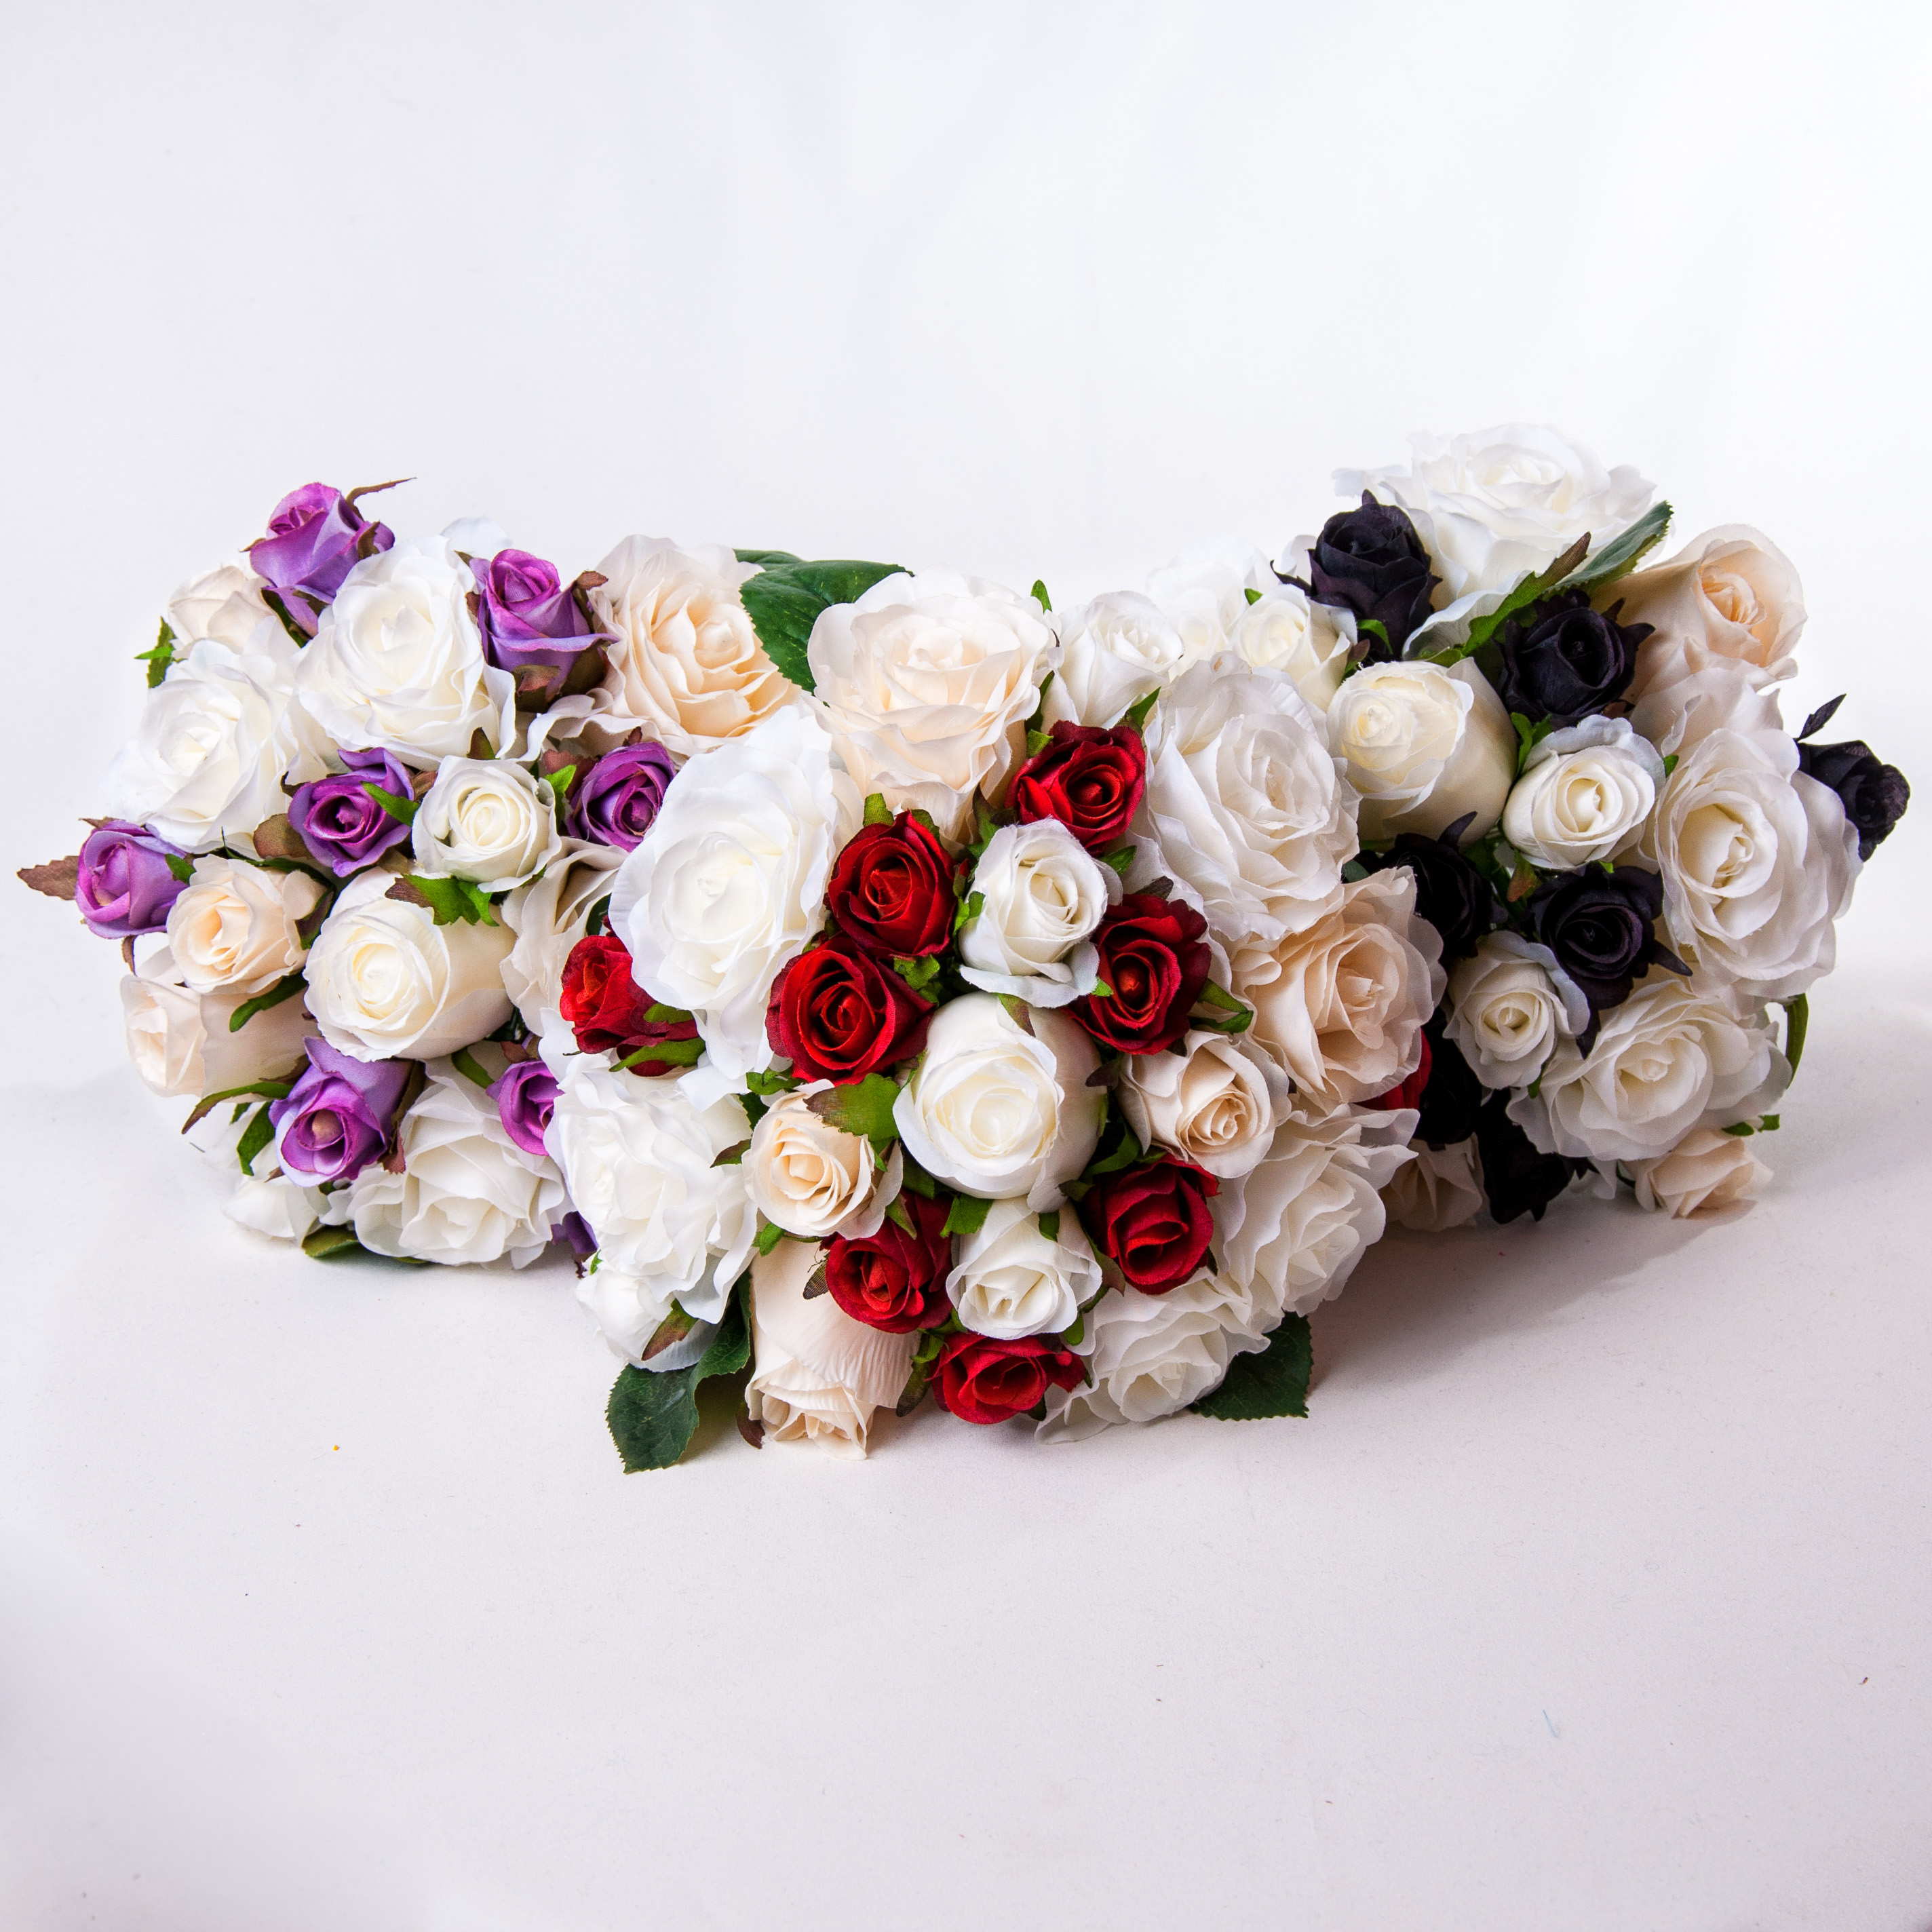 White Wedding Rose Bouquets Silk Call Our Wedding Specialists For